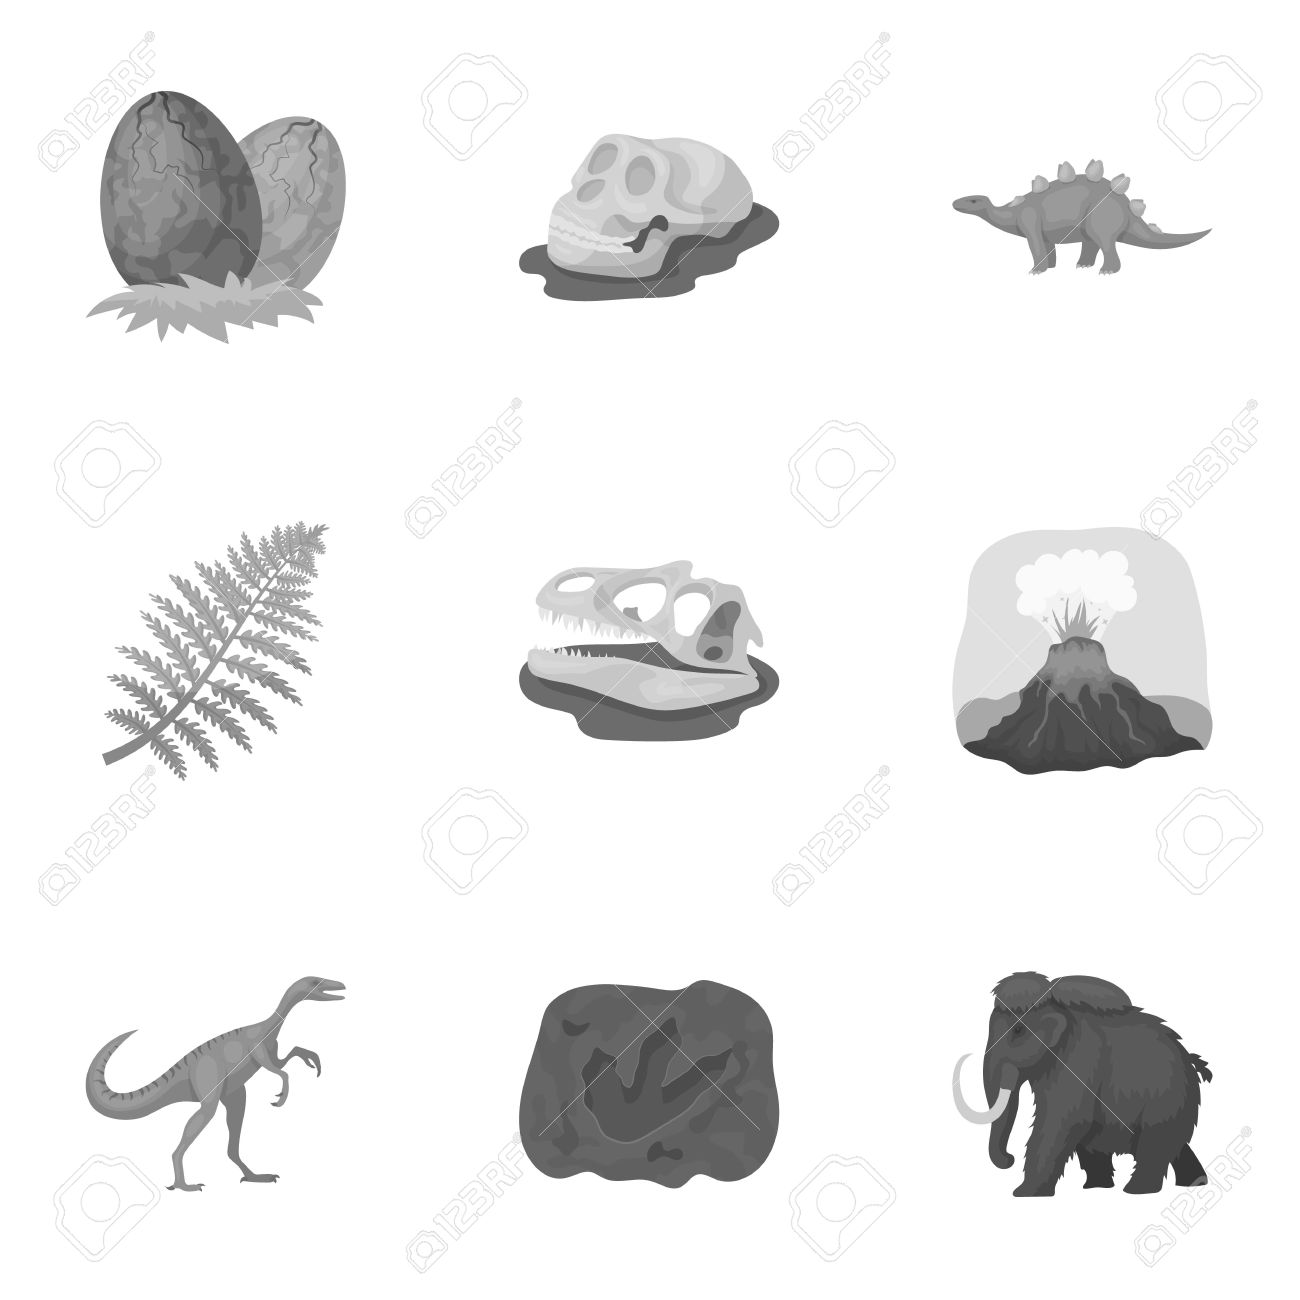 Mammals Ancient Extinct Animals And Their Tracks And Remains Dinosaurs Tyrannosaurs Pnictosaursdinisaurs 123rfcom Ancient Extinct Animals And Their Tracks And Remains Dinosaurs